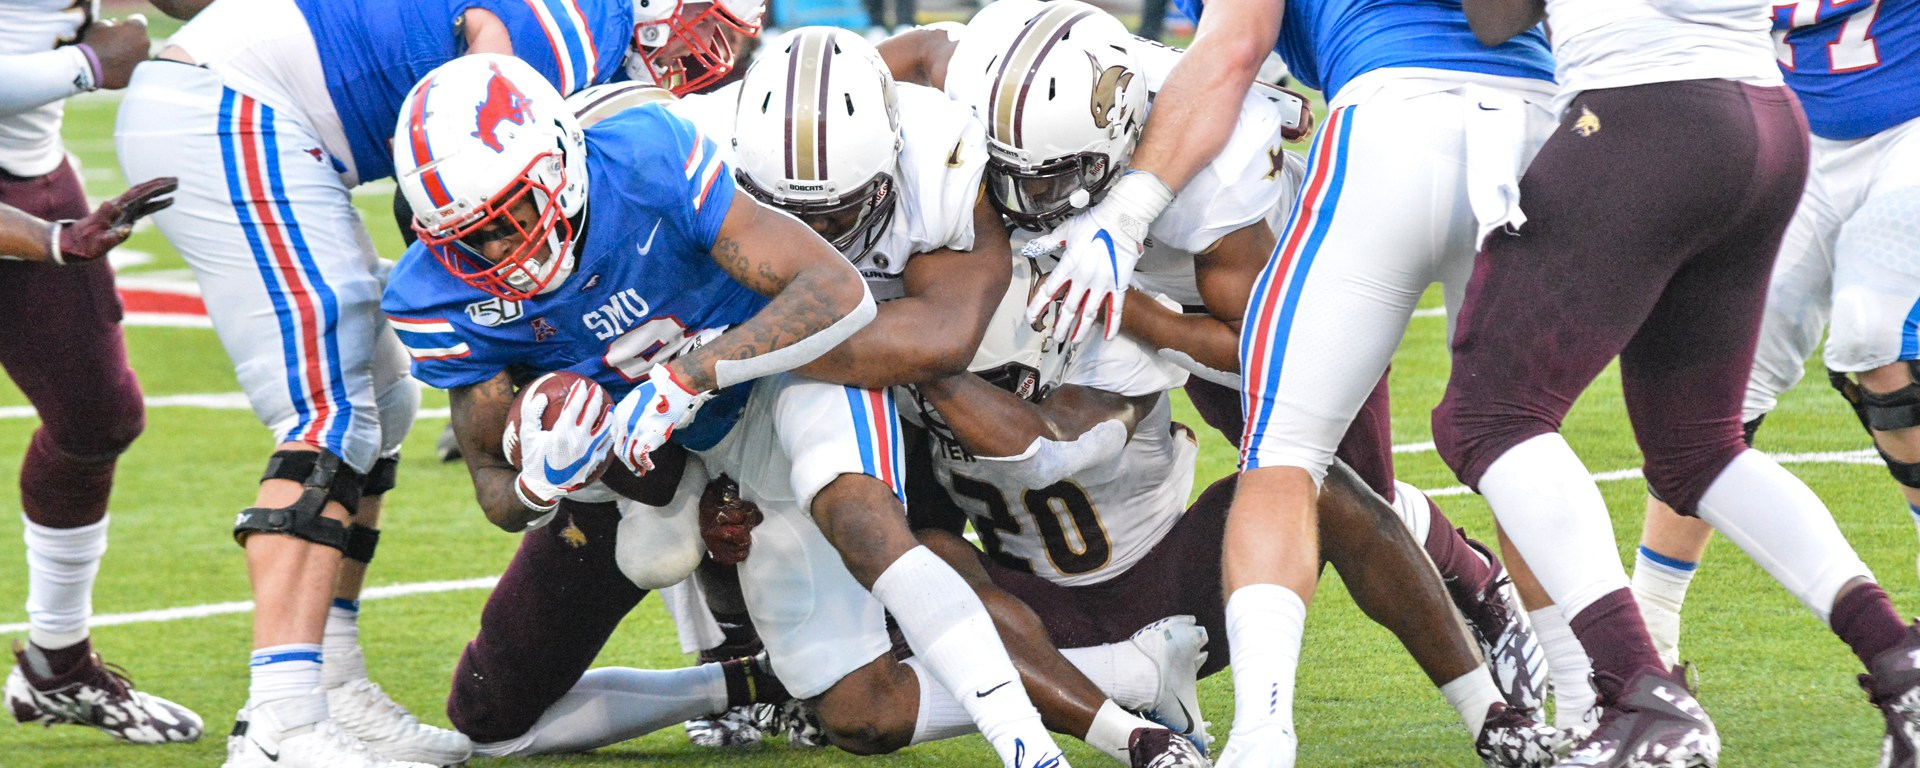 Reggie Robinson Jr. fights for extra yards against the Texas State Bobcats defense.